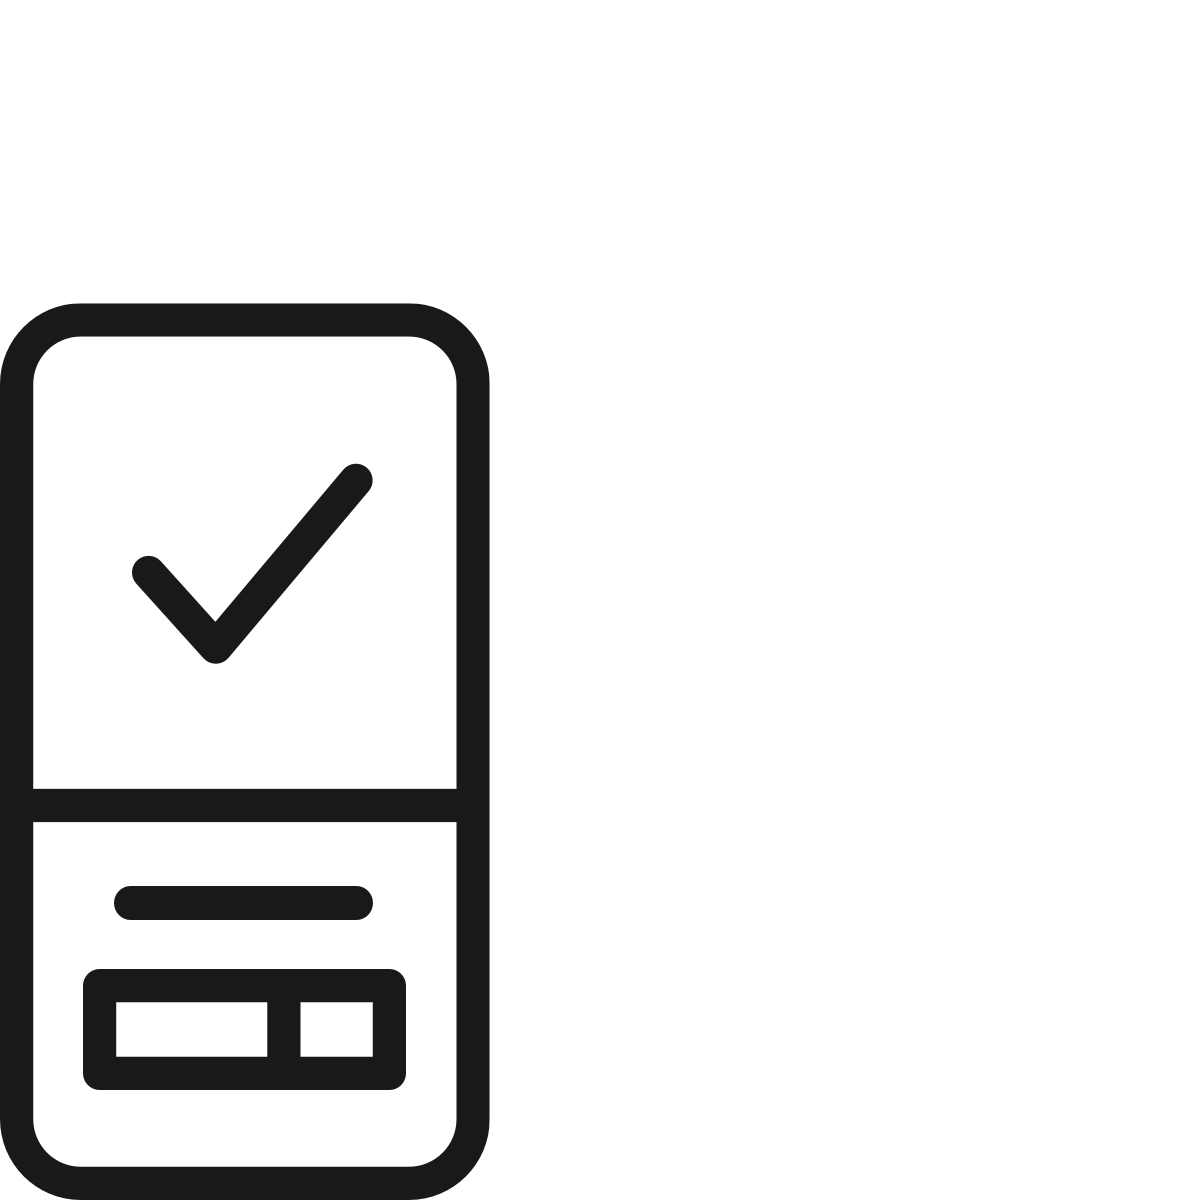 An illustrated black and white icon depicting the Live Platform wellness app